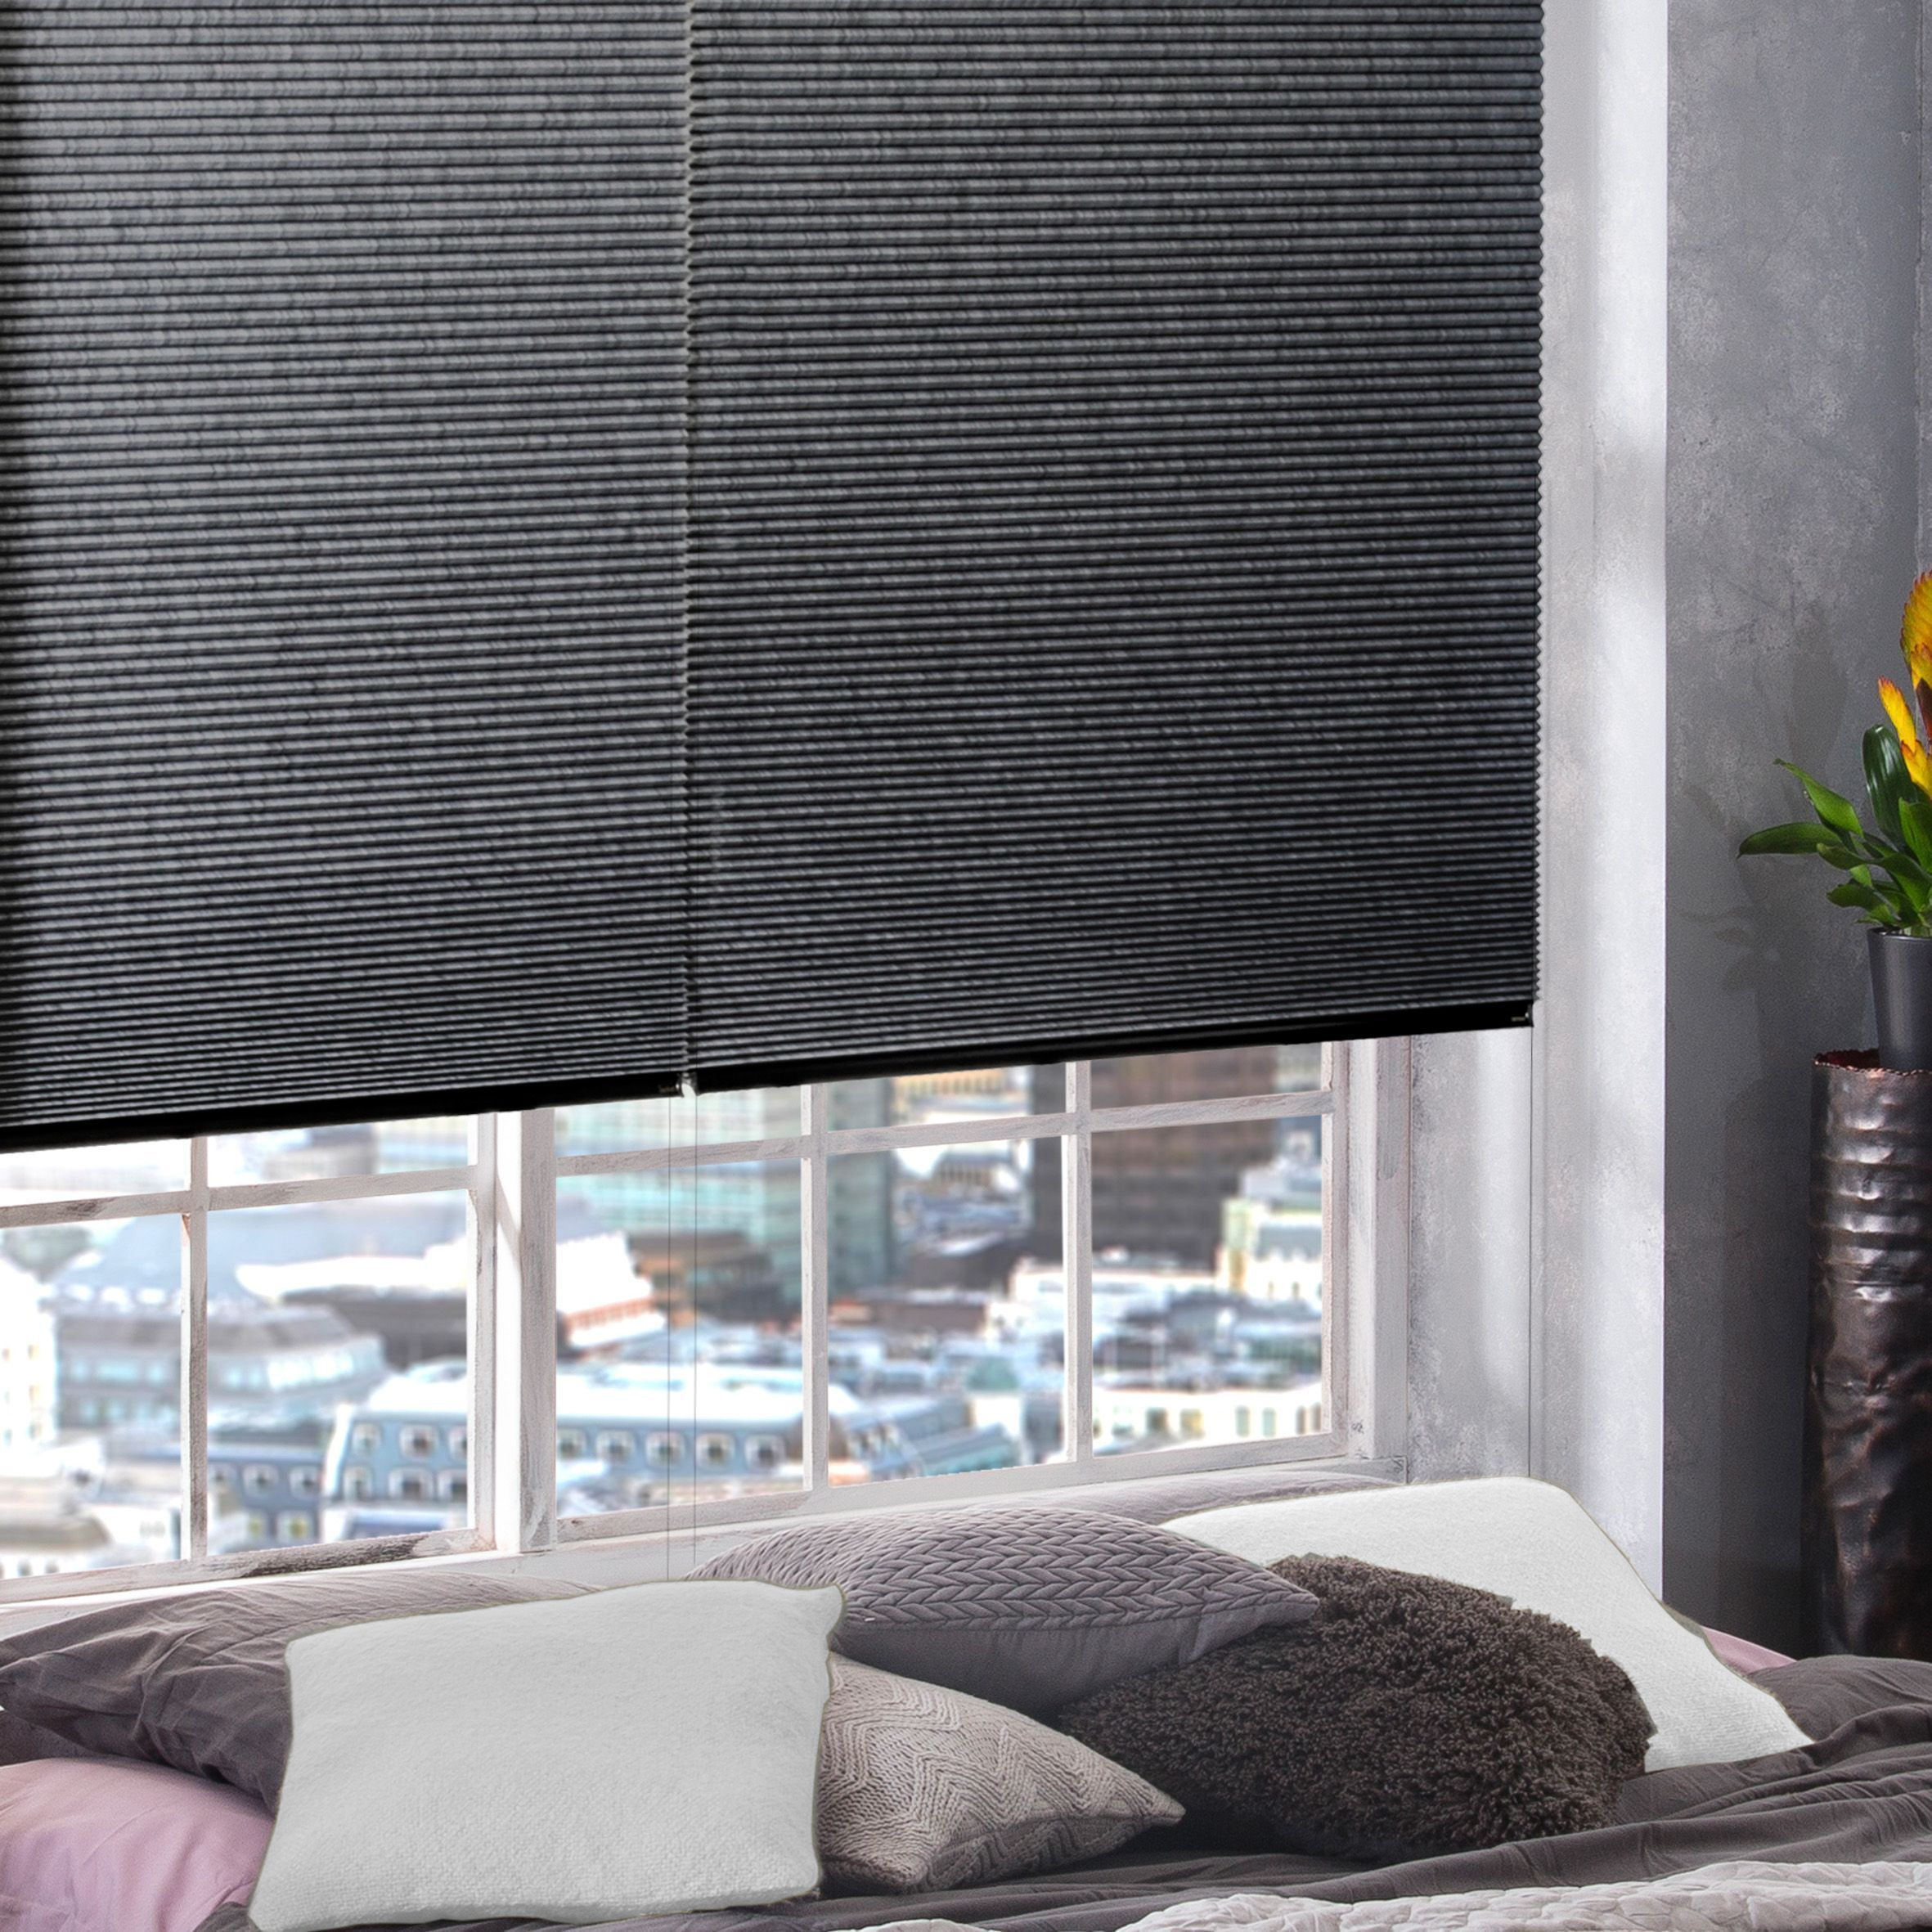 5 Jolting Cool Tips Vertical Blinds With Drapes Roller Blinds Ceilings Privacy Blinds Bathroom Fabr Curtains With Blinds Blinds For Windows Living Room Blinds